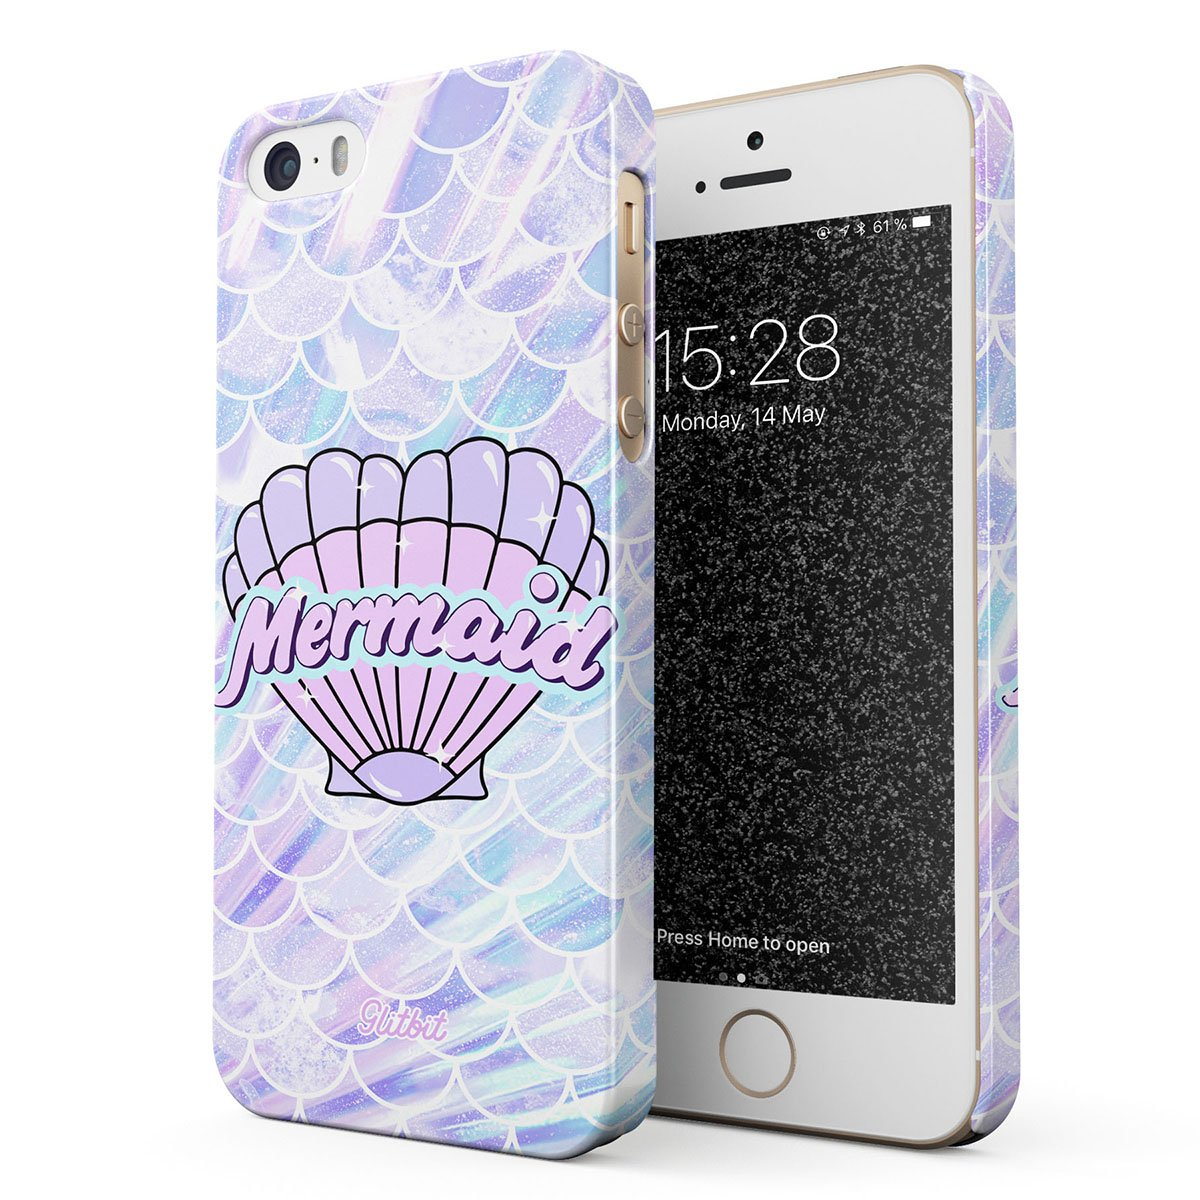 Glitbit Compatible with iPhone 5 / 5s / SE Case Mermaid Seashell Paua Abalone of The Ocean Sea Holographic Pastel Pink Purple Aesthetic Thin Design Durable Hard Shell Plastic Protective Case Cover by Glitbit